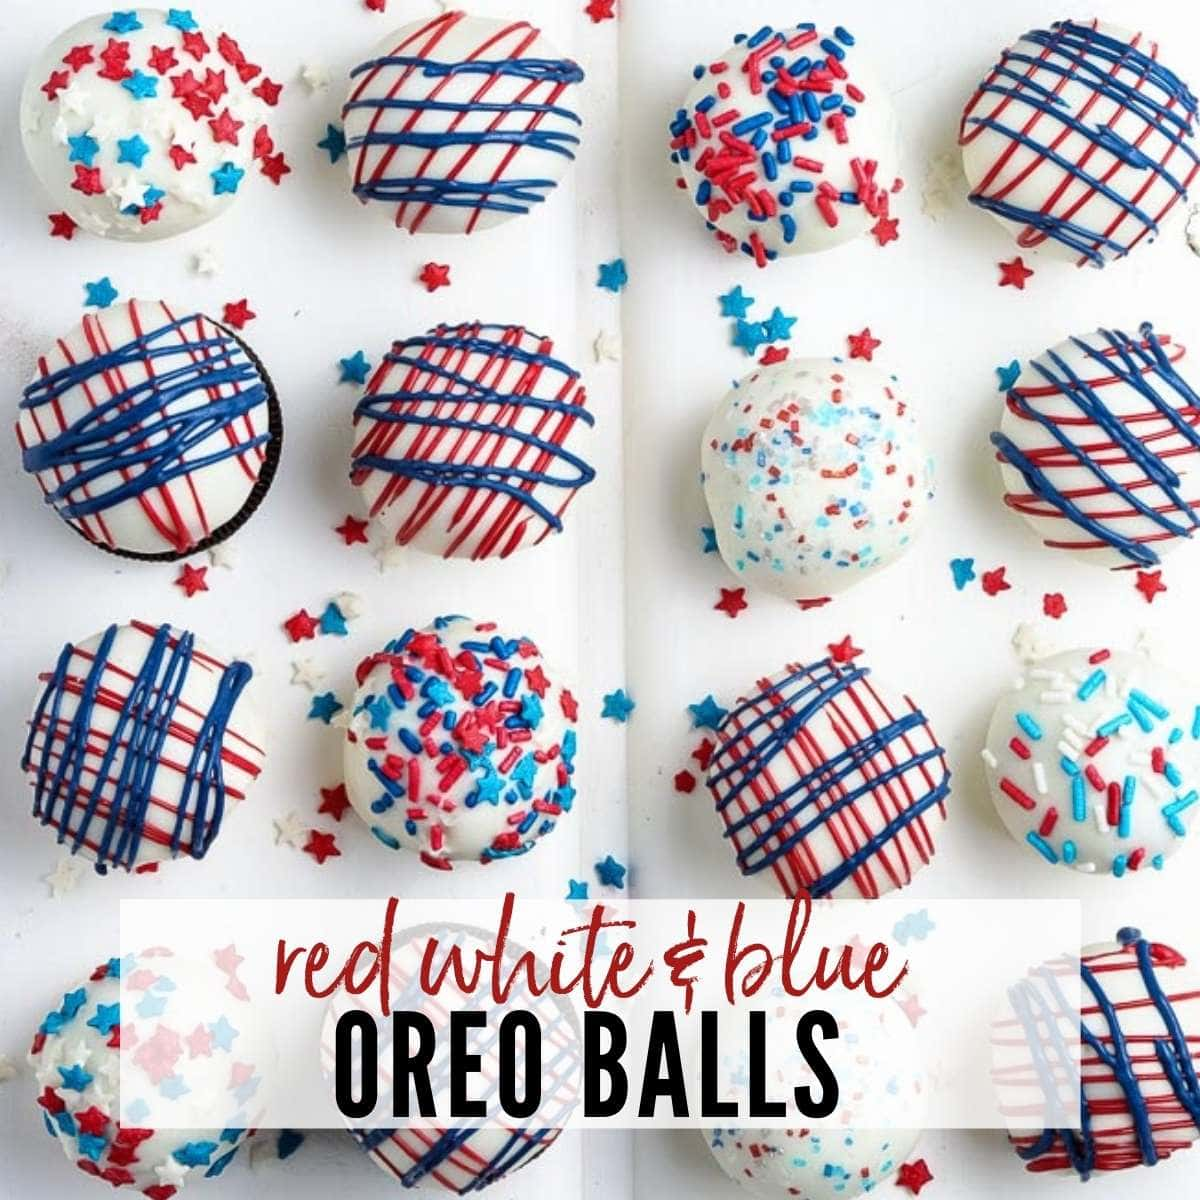 red white and blue decorated oreo balls with text overlay